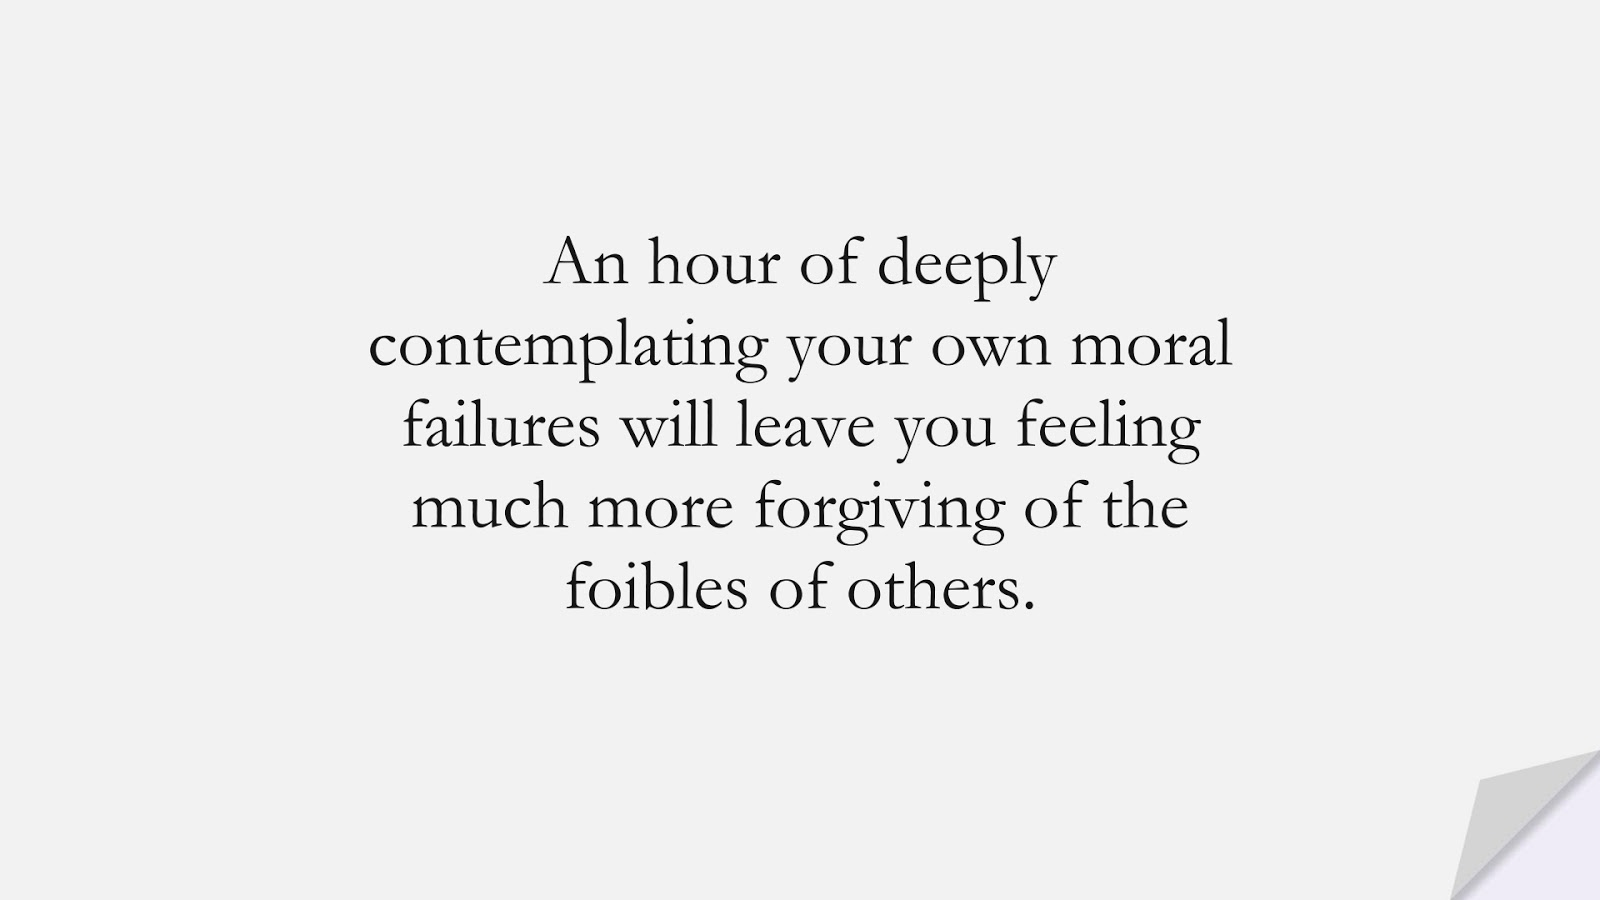 An hour of deeply contemplating your own moral failures will leave you feeling much more forgiving of the foibles of others.FALSE